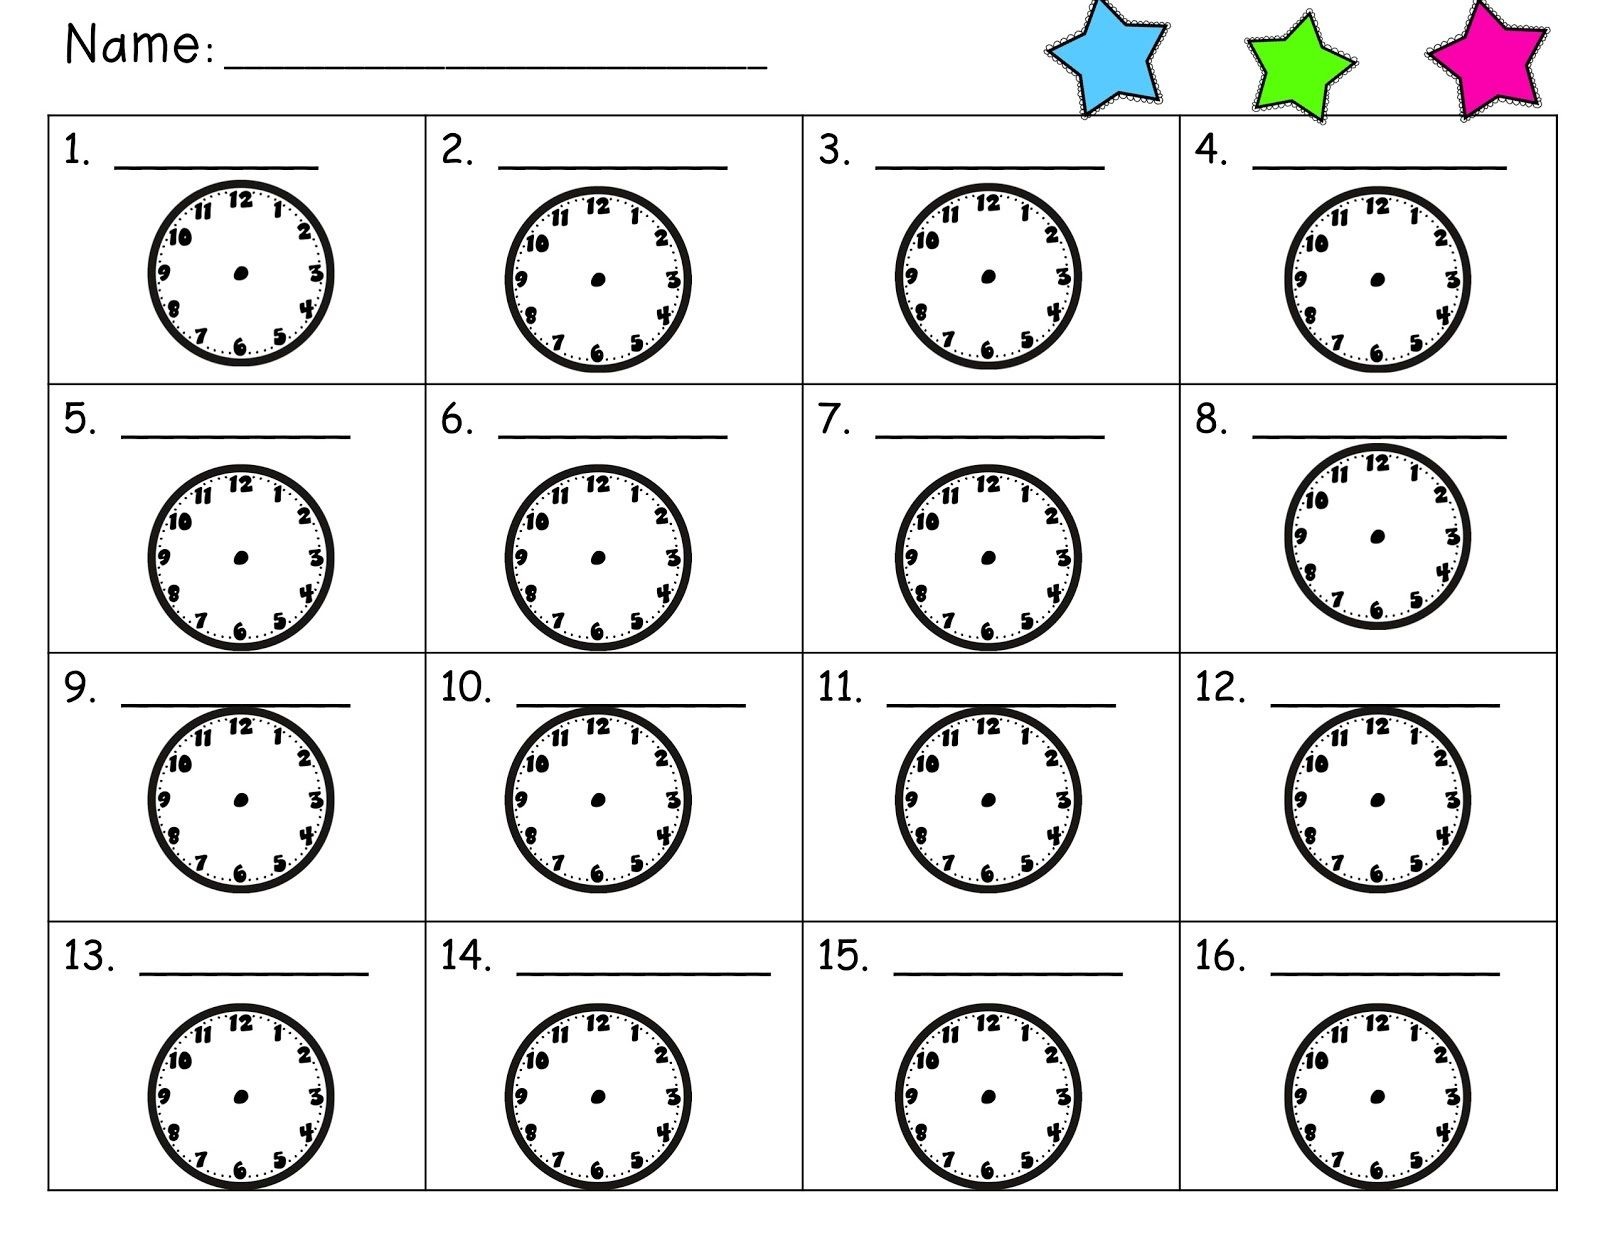 Uncategorized Time Elapsed Worksheets time elapsed worksheets to print activity shelter kids shelter